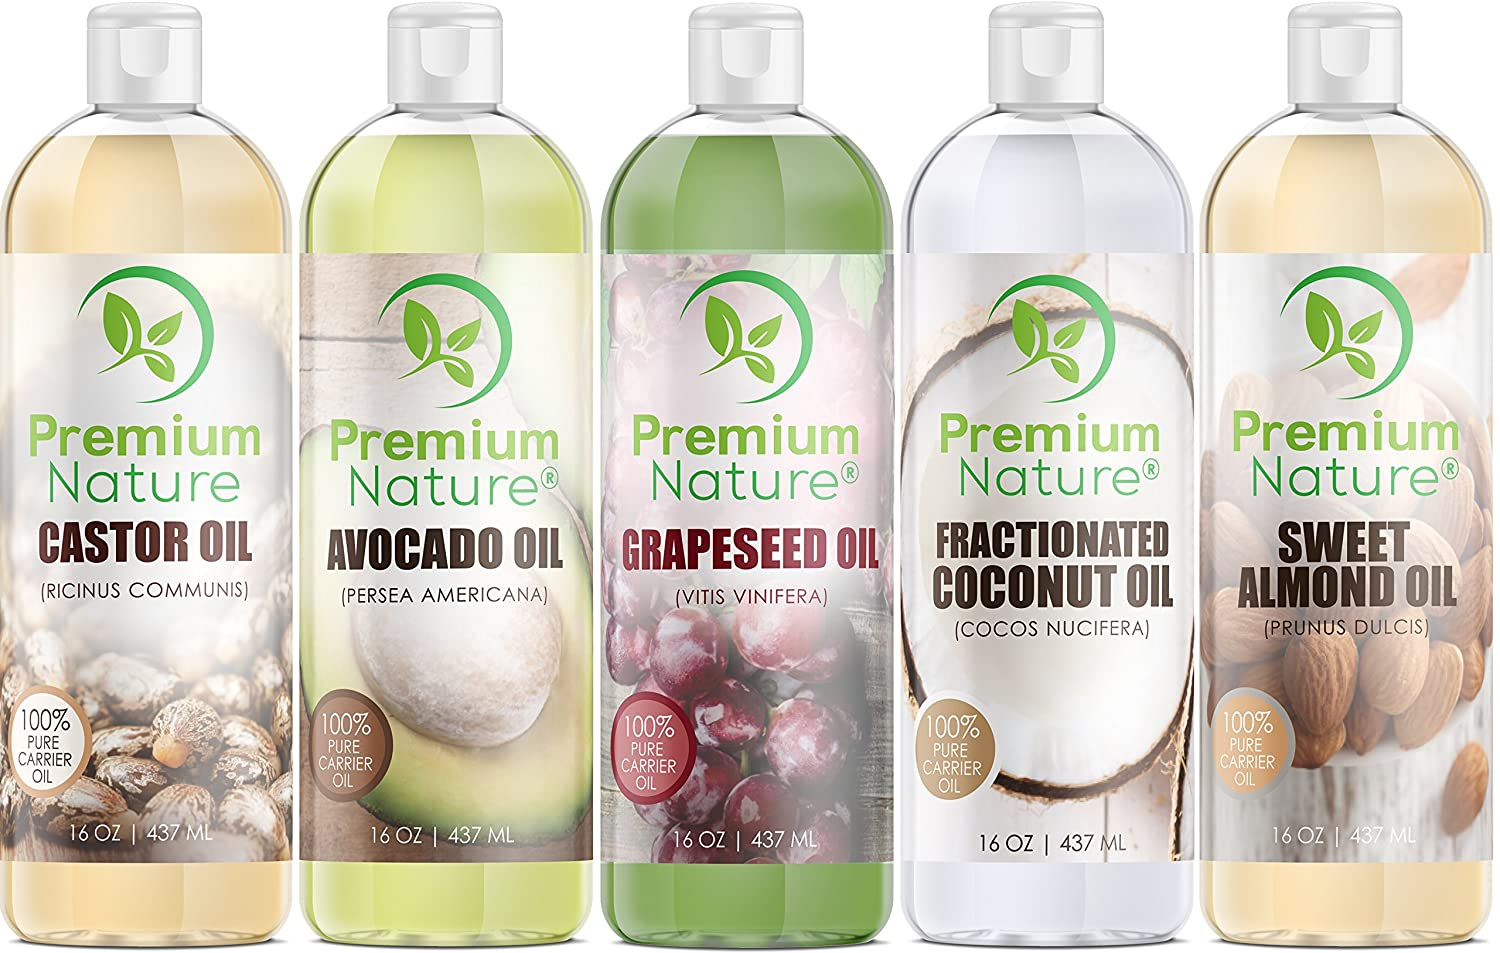 Carrier Oils For Essential Oil - 5 Piece Variety Pack Gift Set Coconut Oil Castor Oil Grapeseed Oil Avocado Oil & Sweet Almond Best Oils for Stretch Mark Dry Skin Hair Body Massage Mixing 4oz Each Premium Nature Carrier Oils Variety 5 Pack